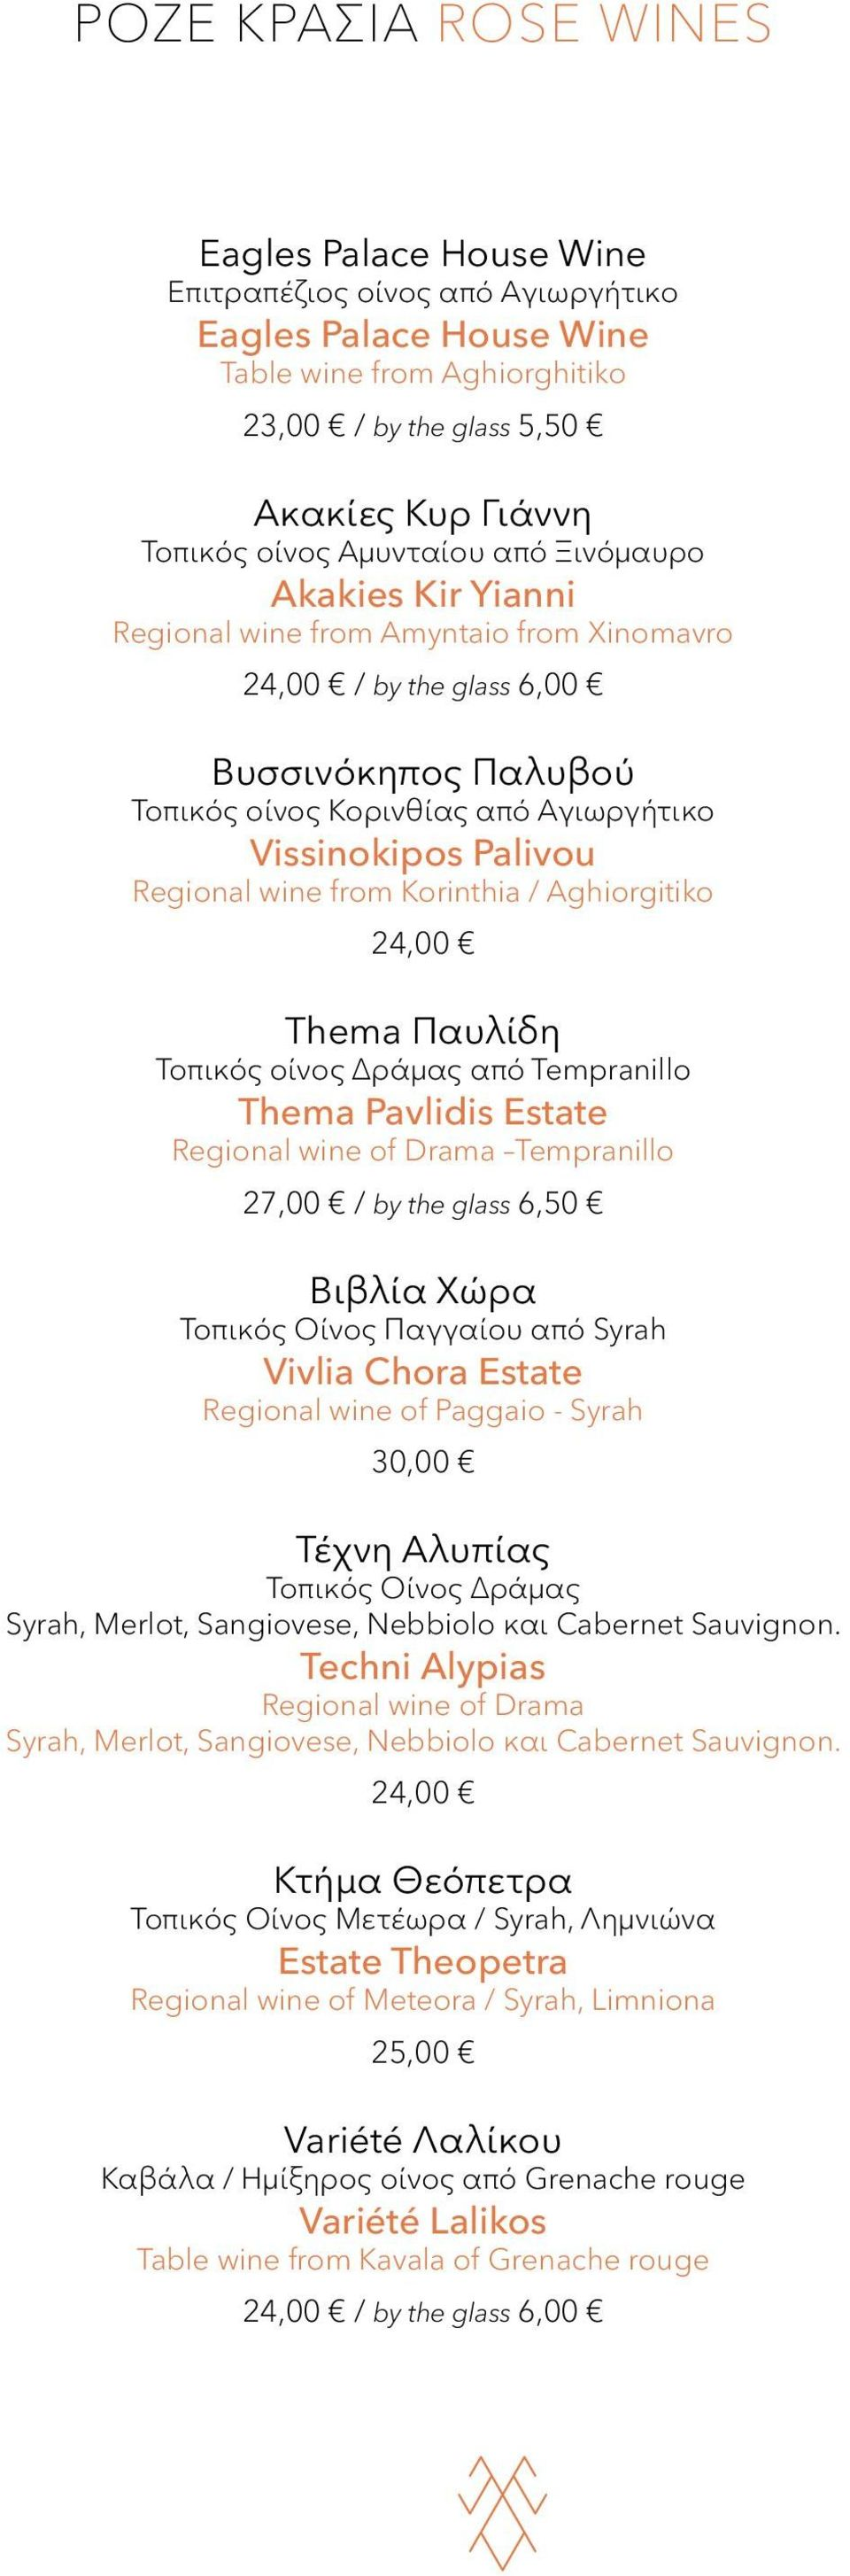 Regional wine from Korinthia / Aghiorgitiko 24,00 Thema Παυλίδη Τοπικός οίνος Δράμας από Tempranillo Thema Pavlidis Estate Regional wine of Drama Tempranillo 27,00 / by the glass 6,50 Βιβλία Χώρα